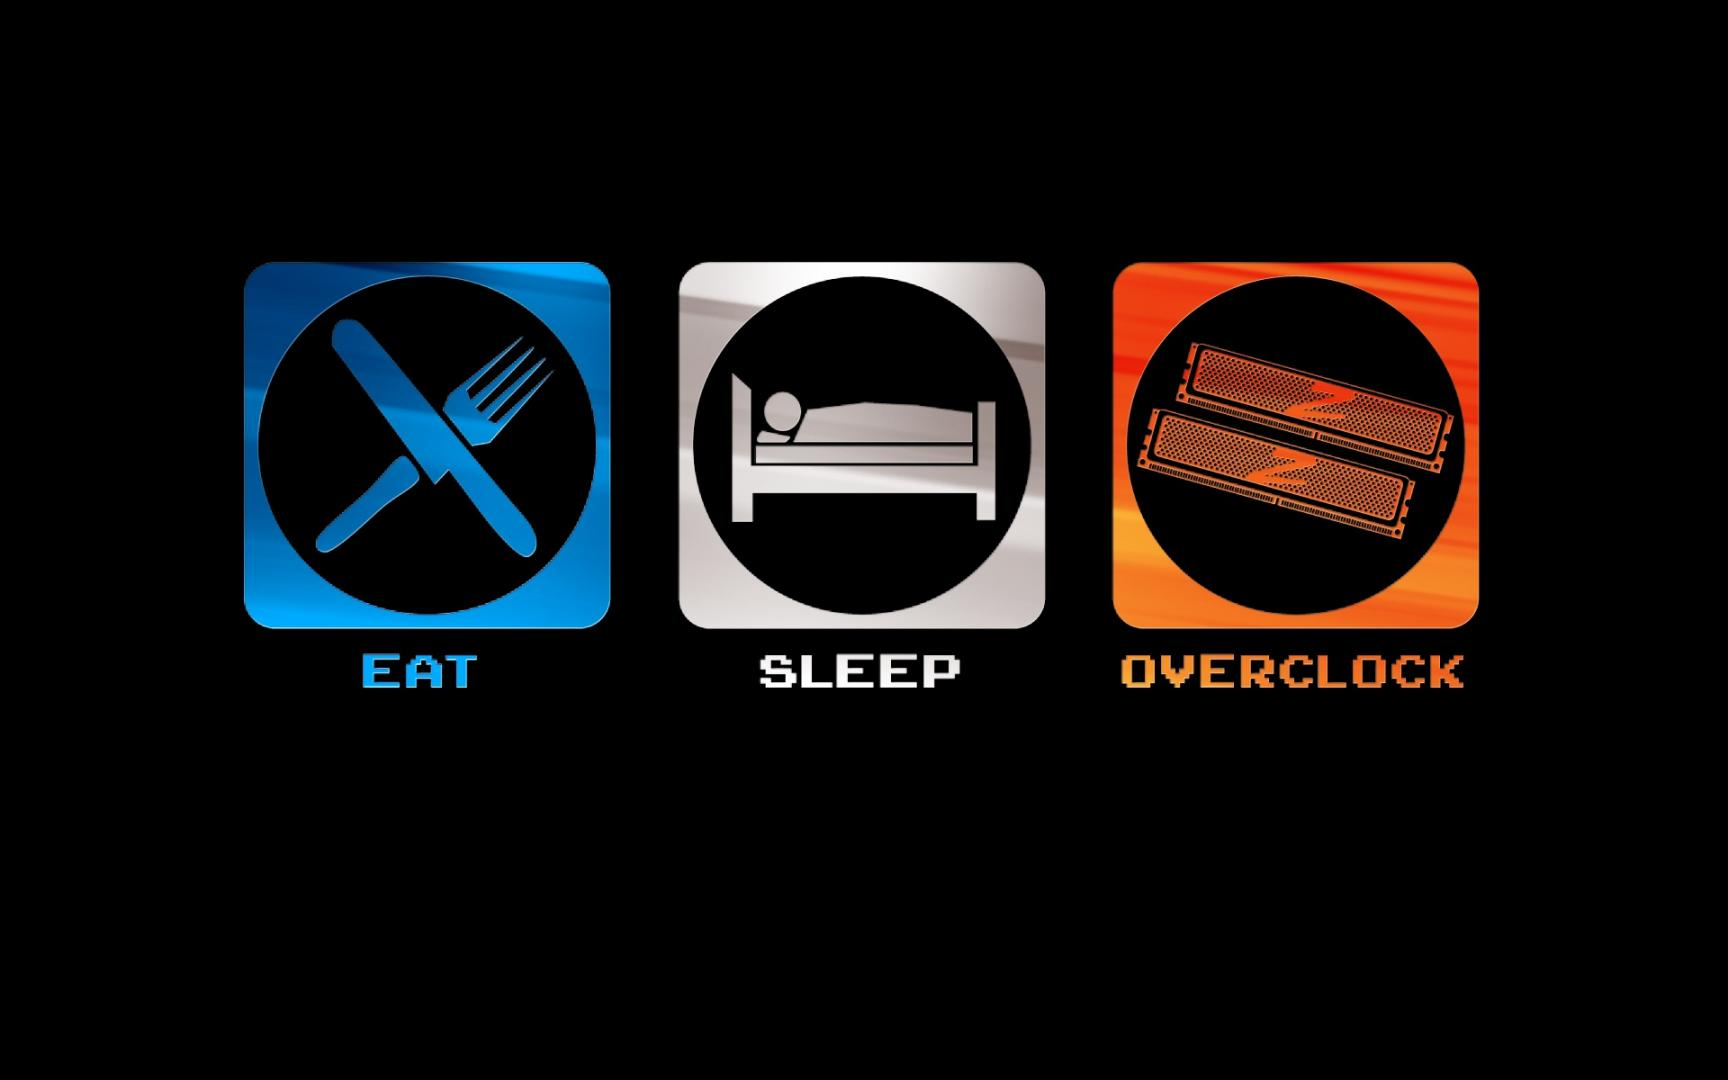 eat_sleep_overclock_1920x1200.jpg